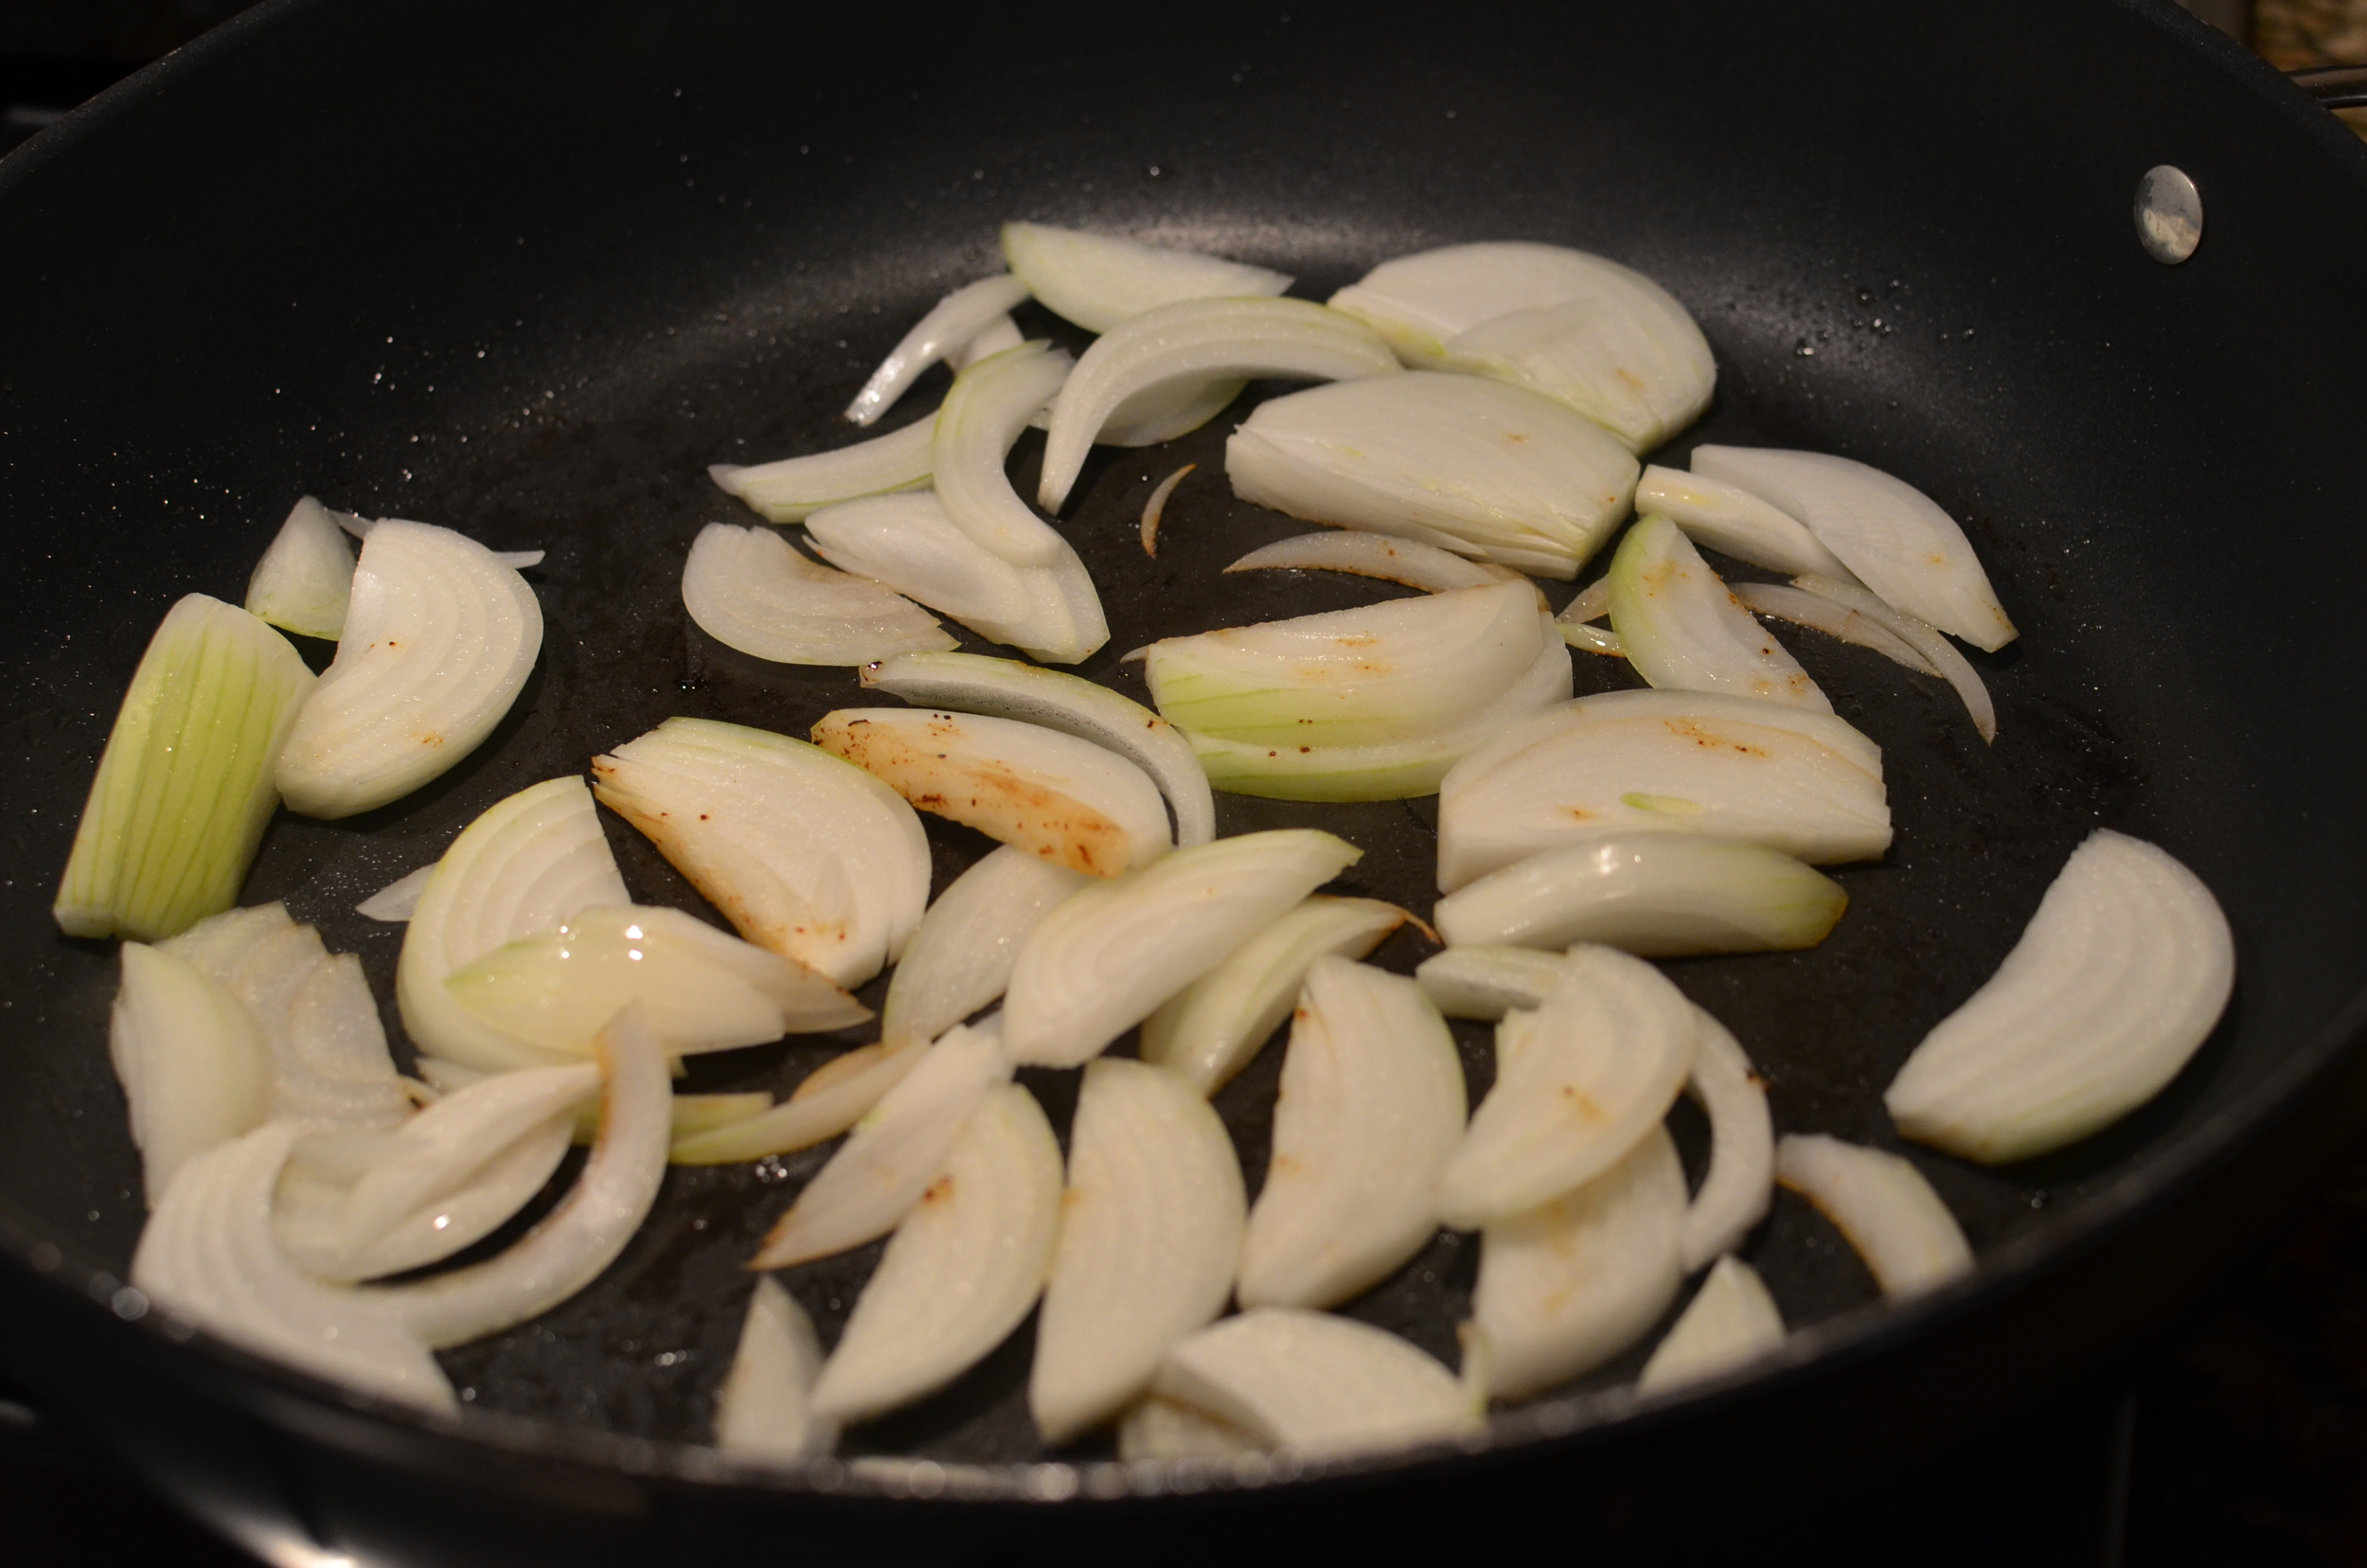 In the same pan, saute the sliced onions in the rendered kielbasa fat.